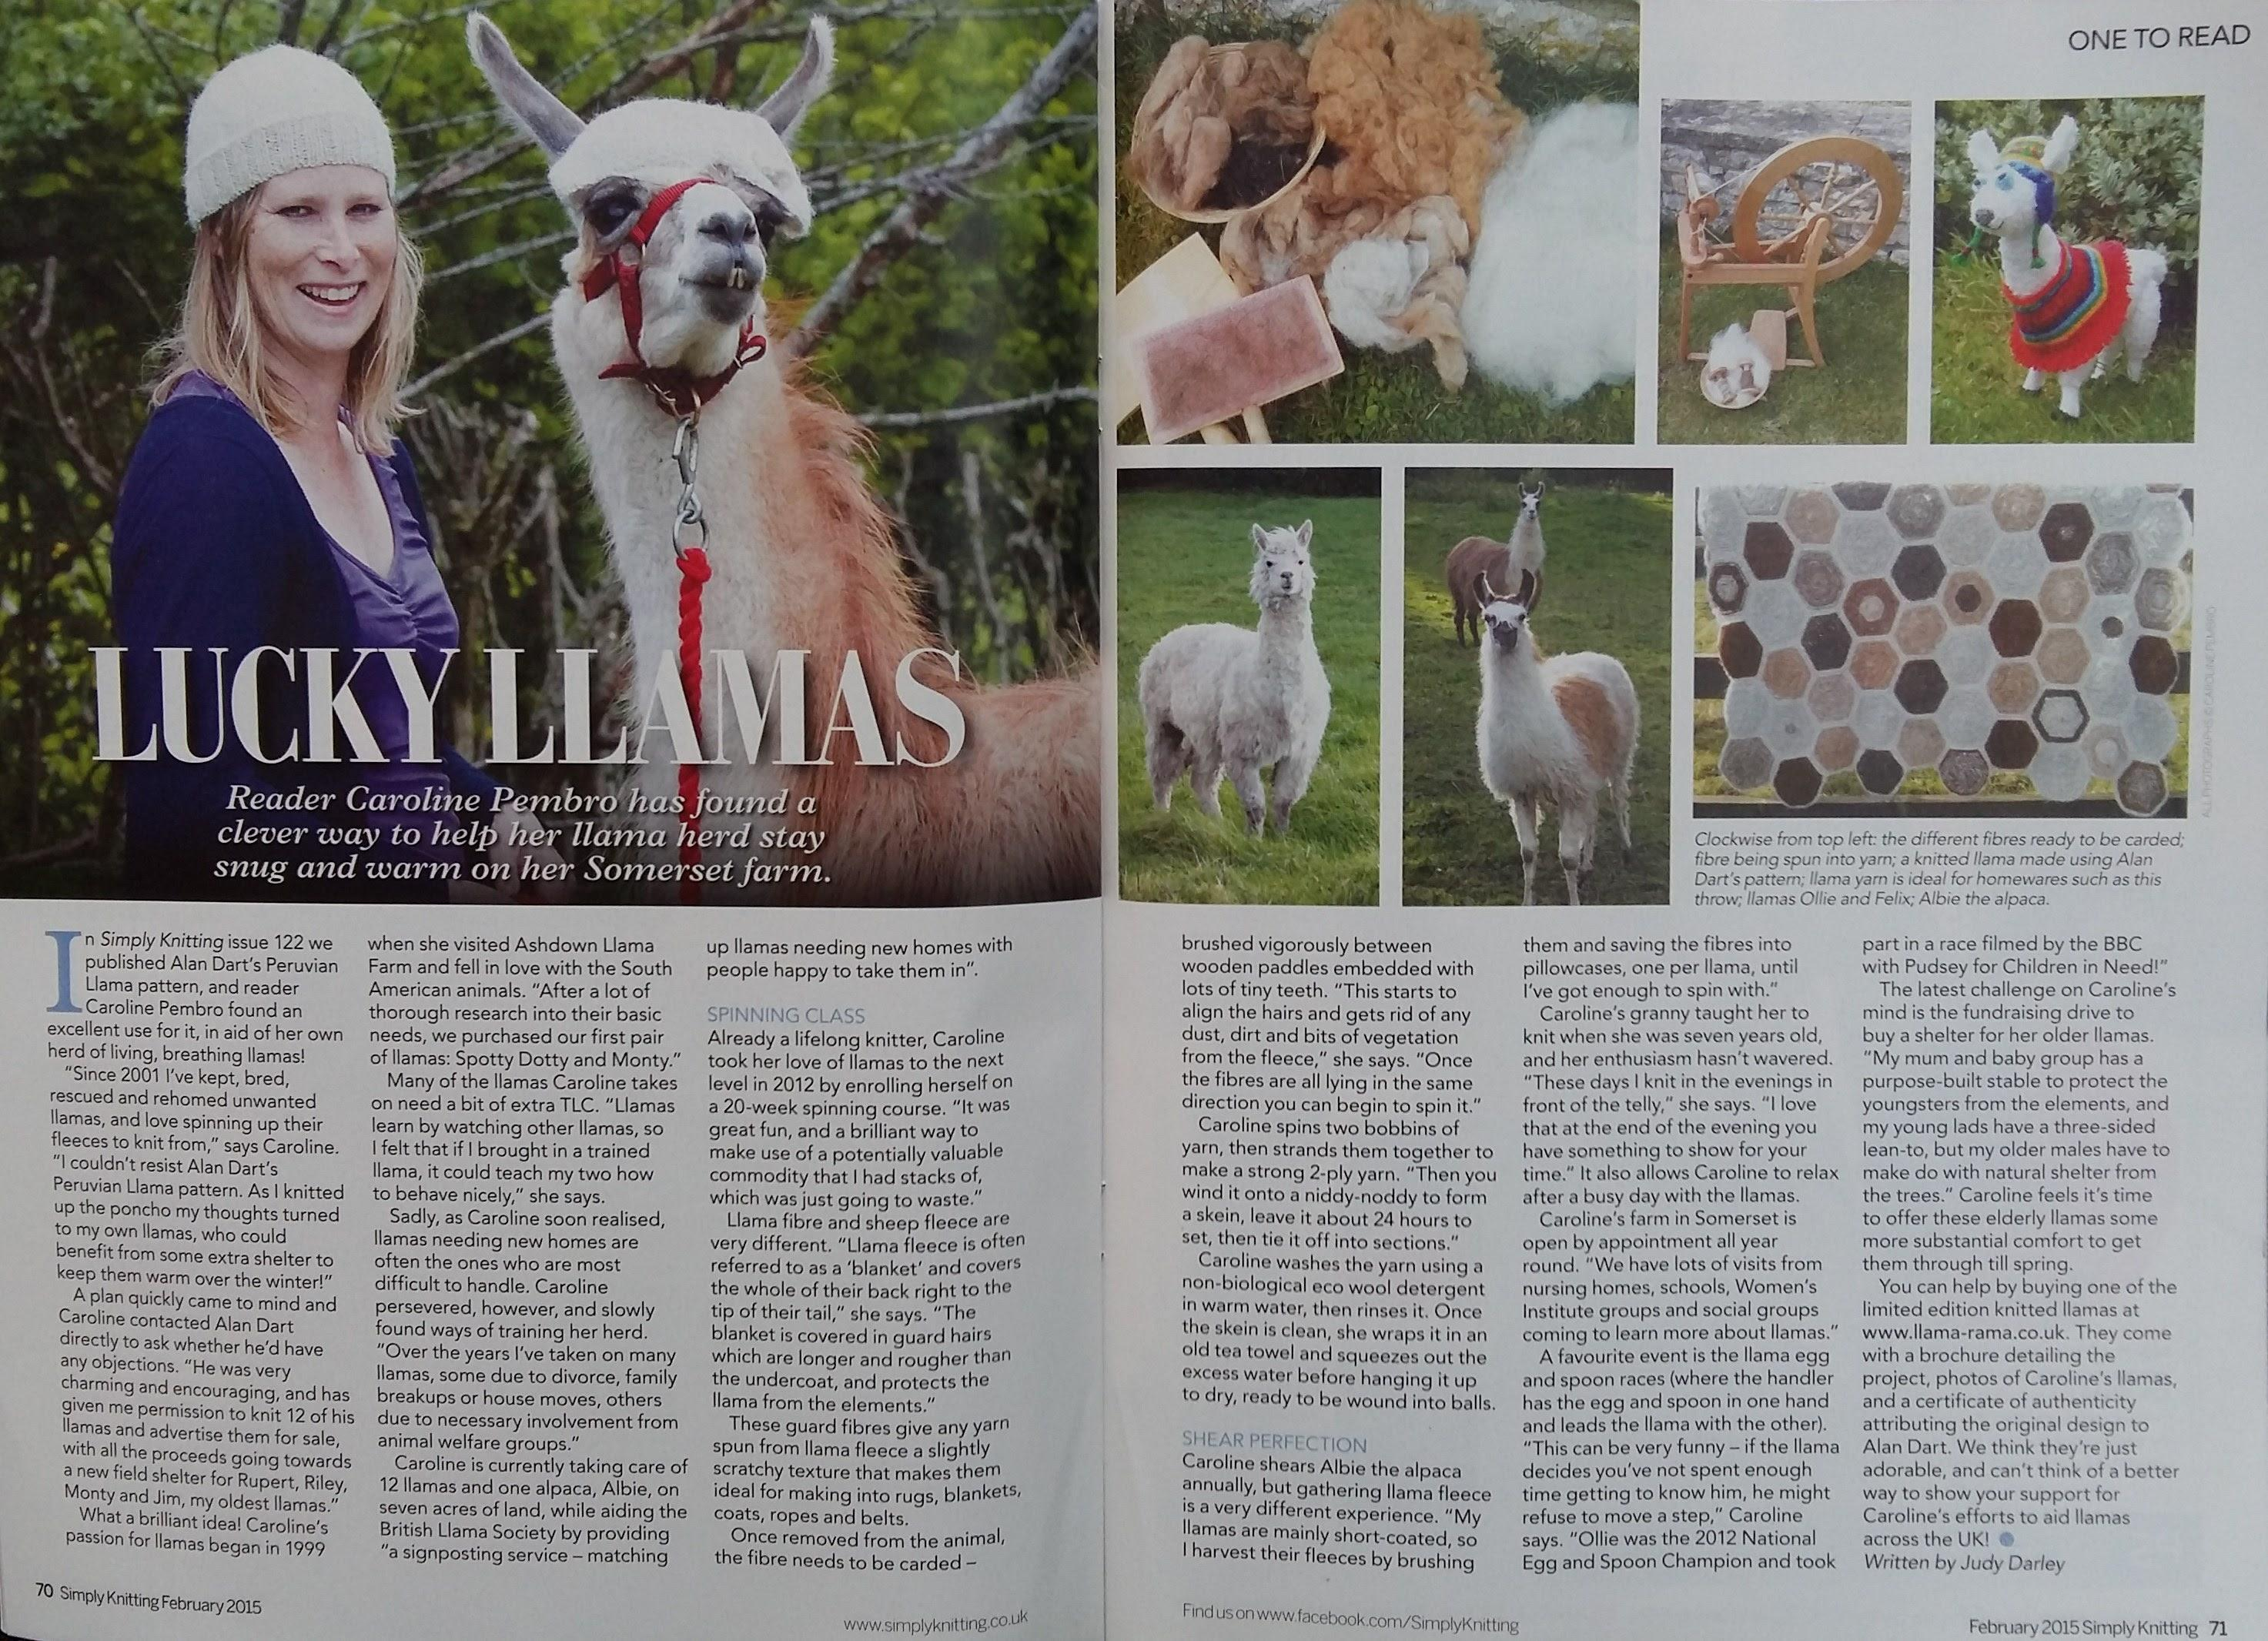 A flattering, double page articel by Judy Darley.  Billed as the UK's No.1 knitting magazine, we were lucky enough to have had a feature written about us - how I spin and knit the llamas' fibre and how I fundraised by selling knitted llamas.